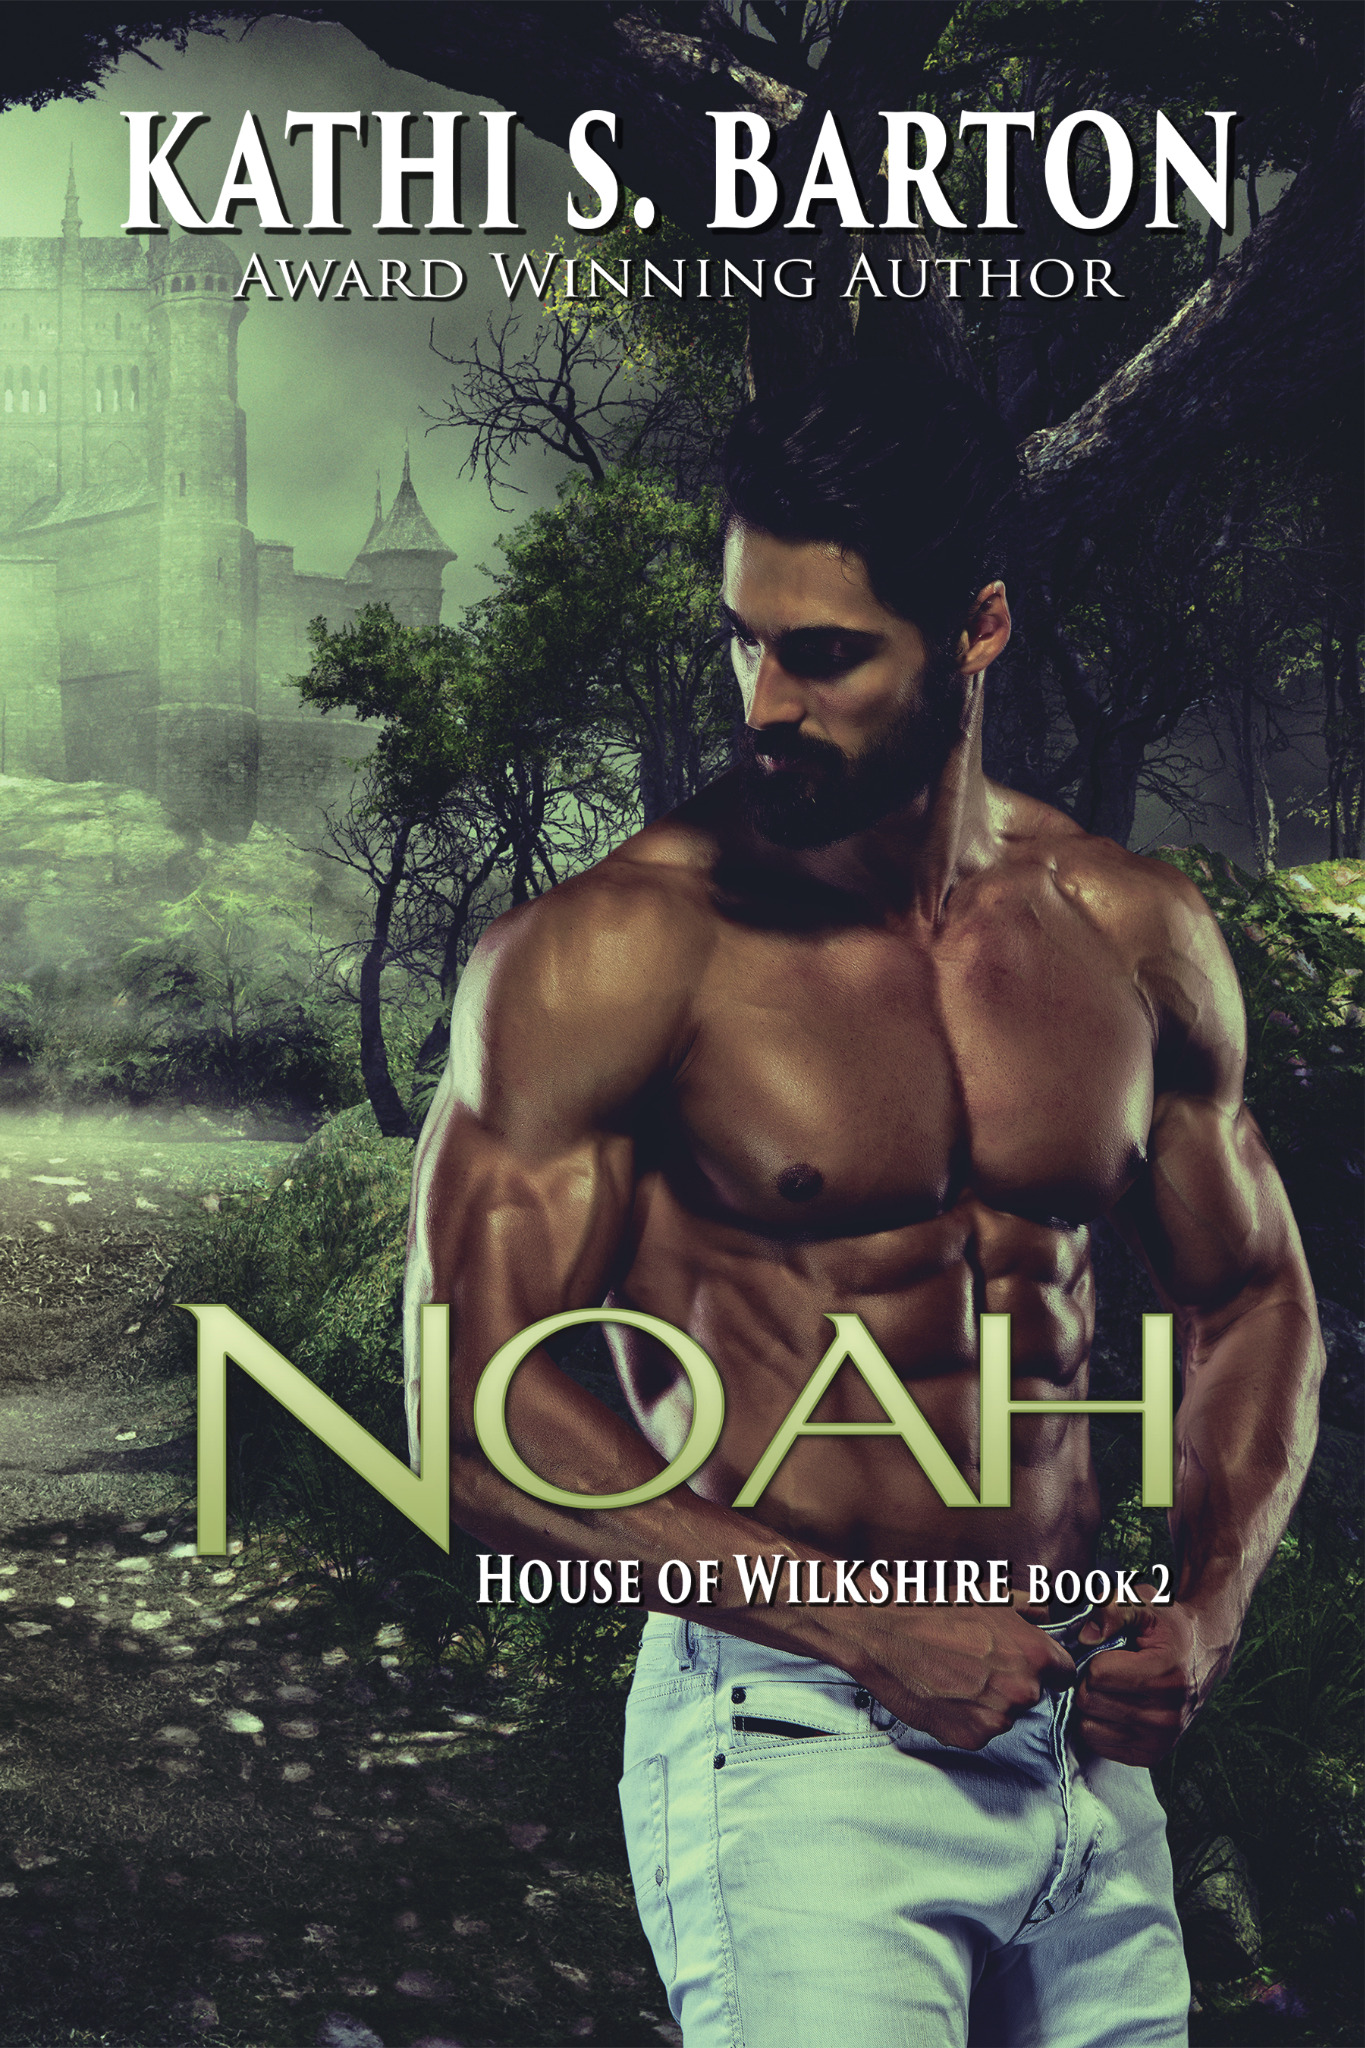 Noah - House of Wilkshire Book 2